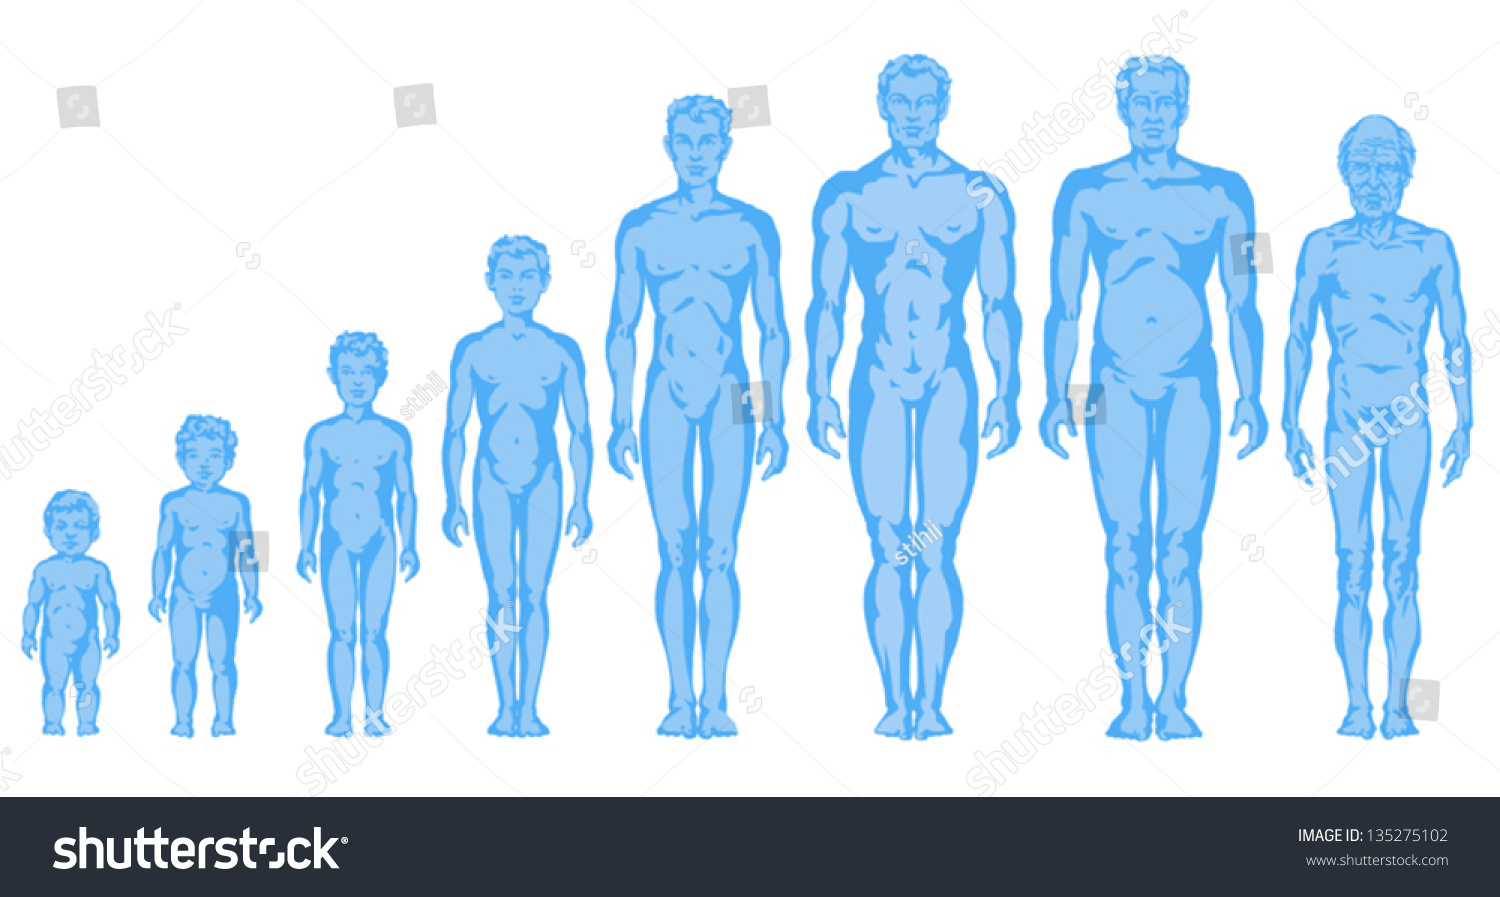 Increasing Male Body Shapes Proportions Of Man Child